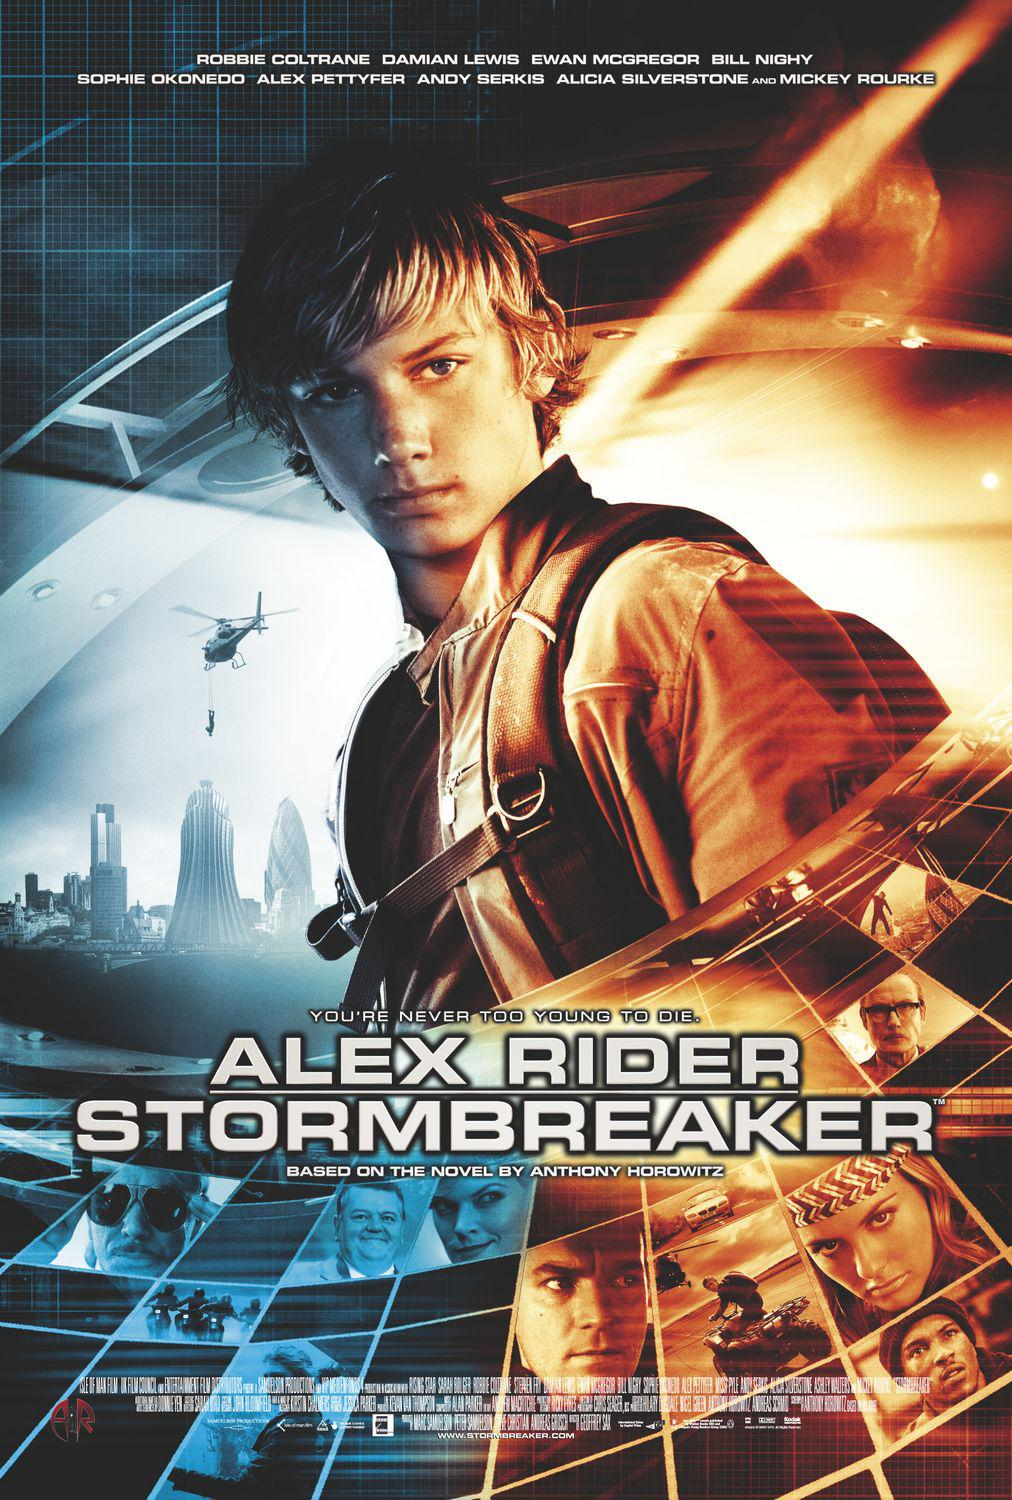 Stormbreaker - Robbie Coltrane - Damian Lewis - Ewan McGregor - Bill Nighy - Sophie Okonedo - Alex Pettyfer - Andy Serkis - Alicia Silverstone - Mickey Rourke ... based on the novel by Anthony Horowitz - film action poster